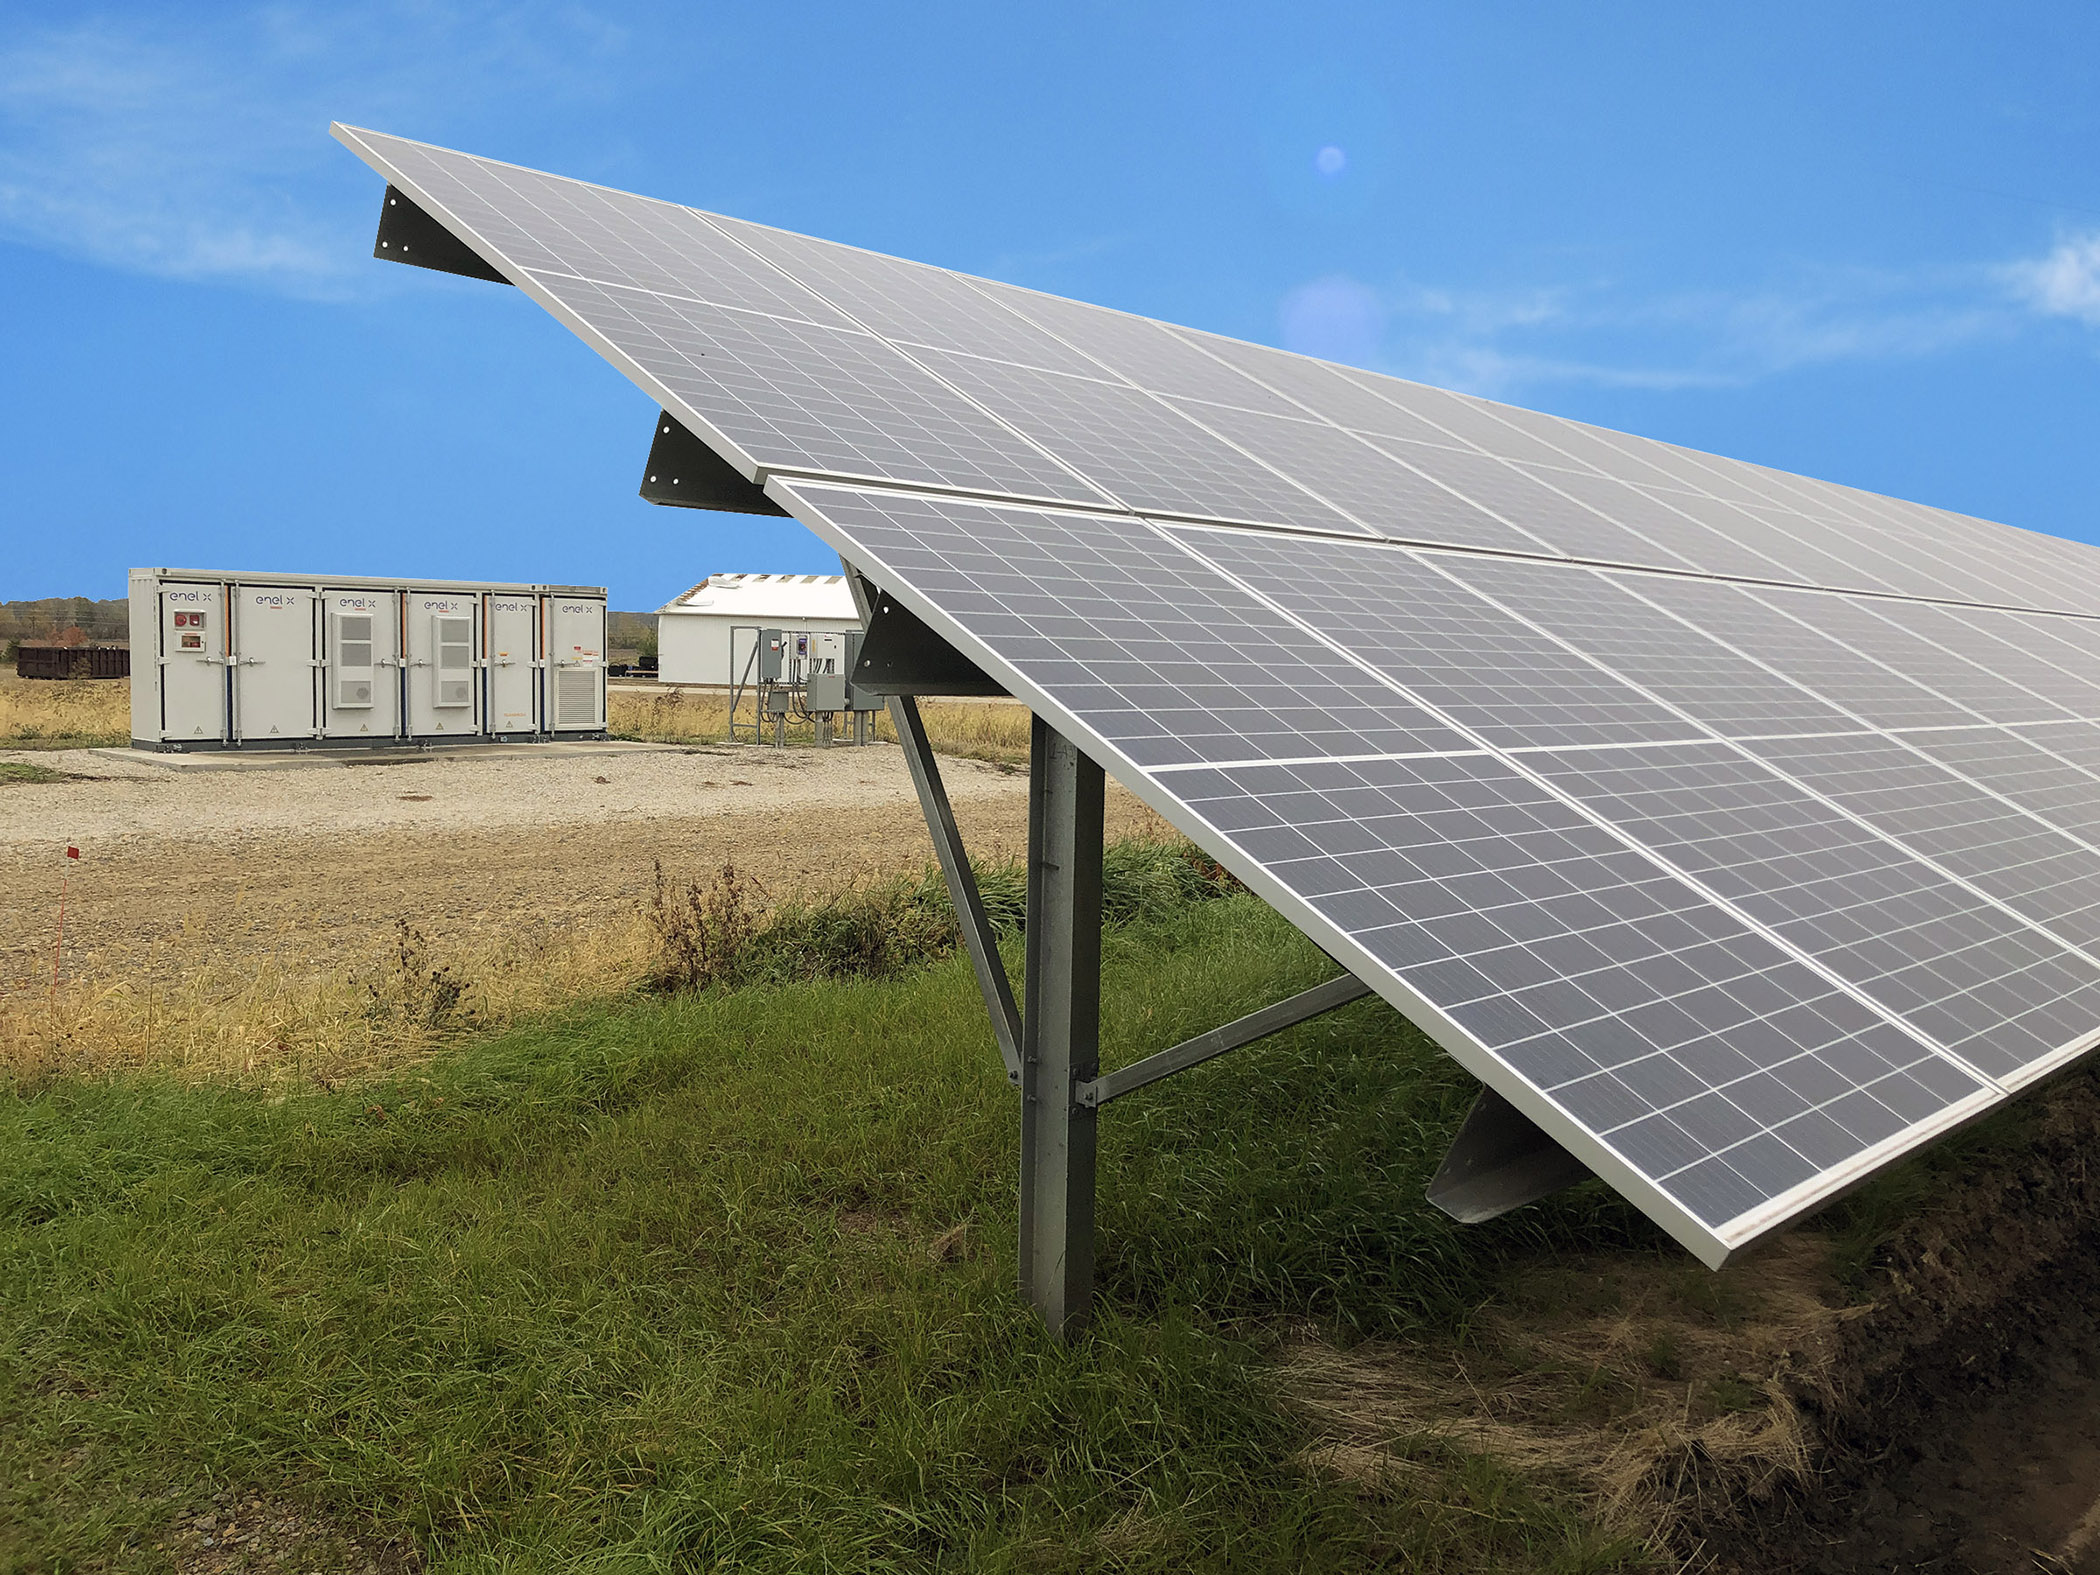 Alliant Energy establishes combined solar garden, battery storage as company launches Clean Energy Blueprint